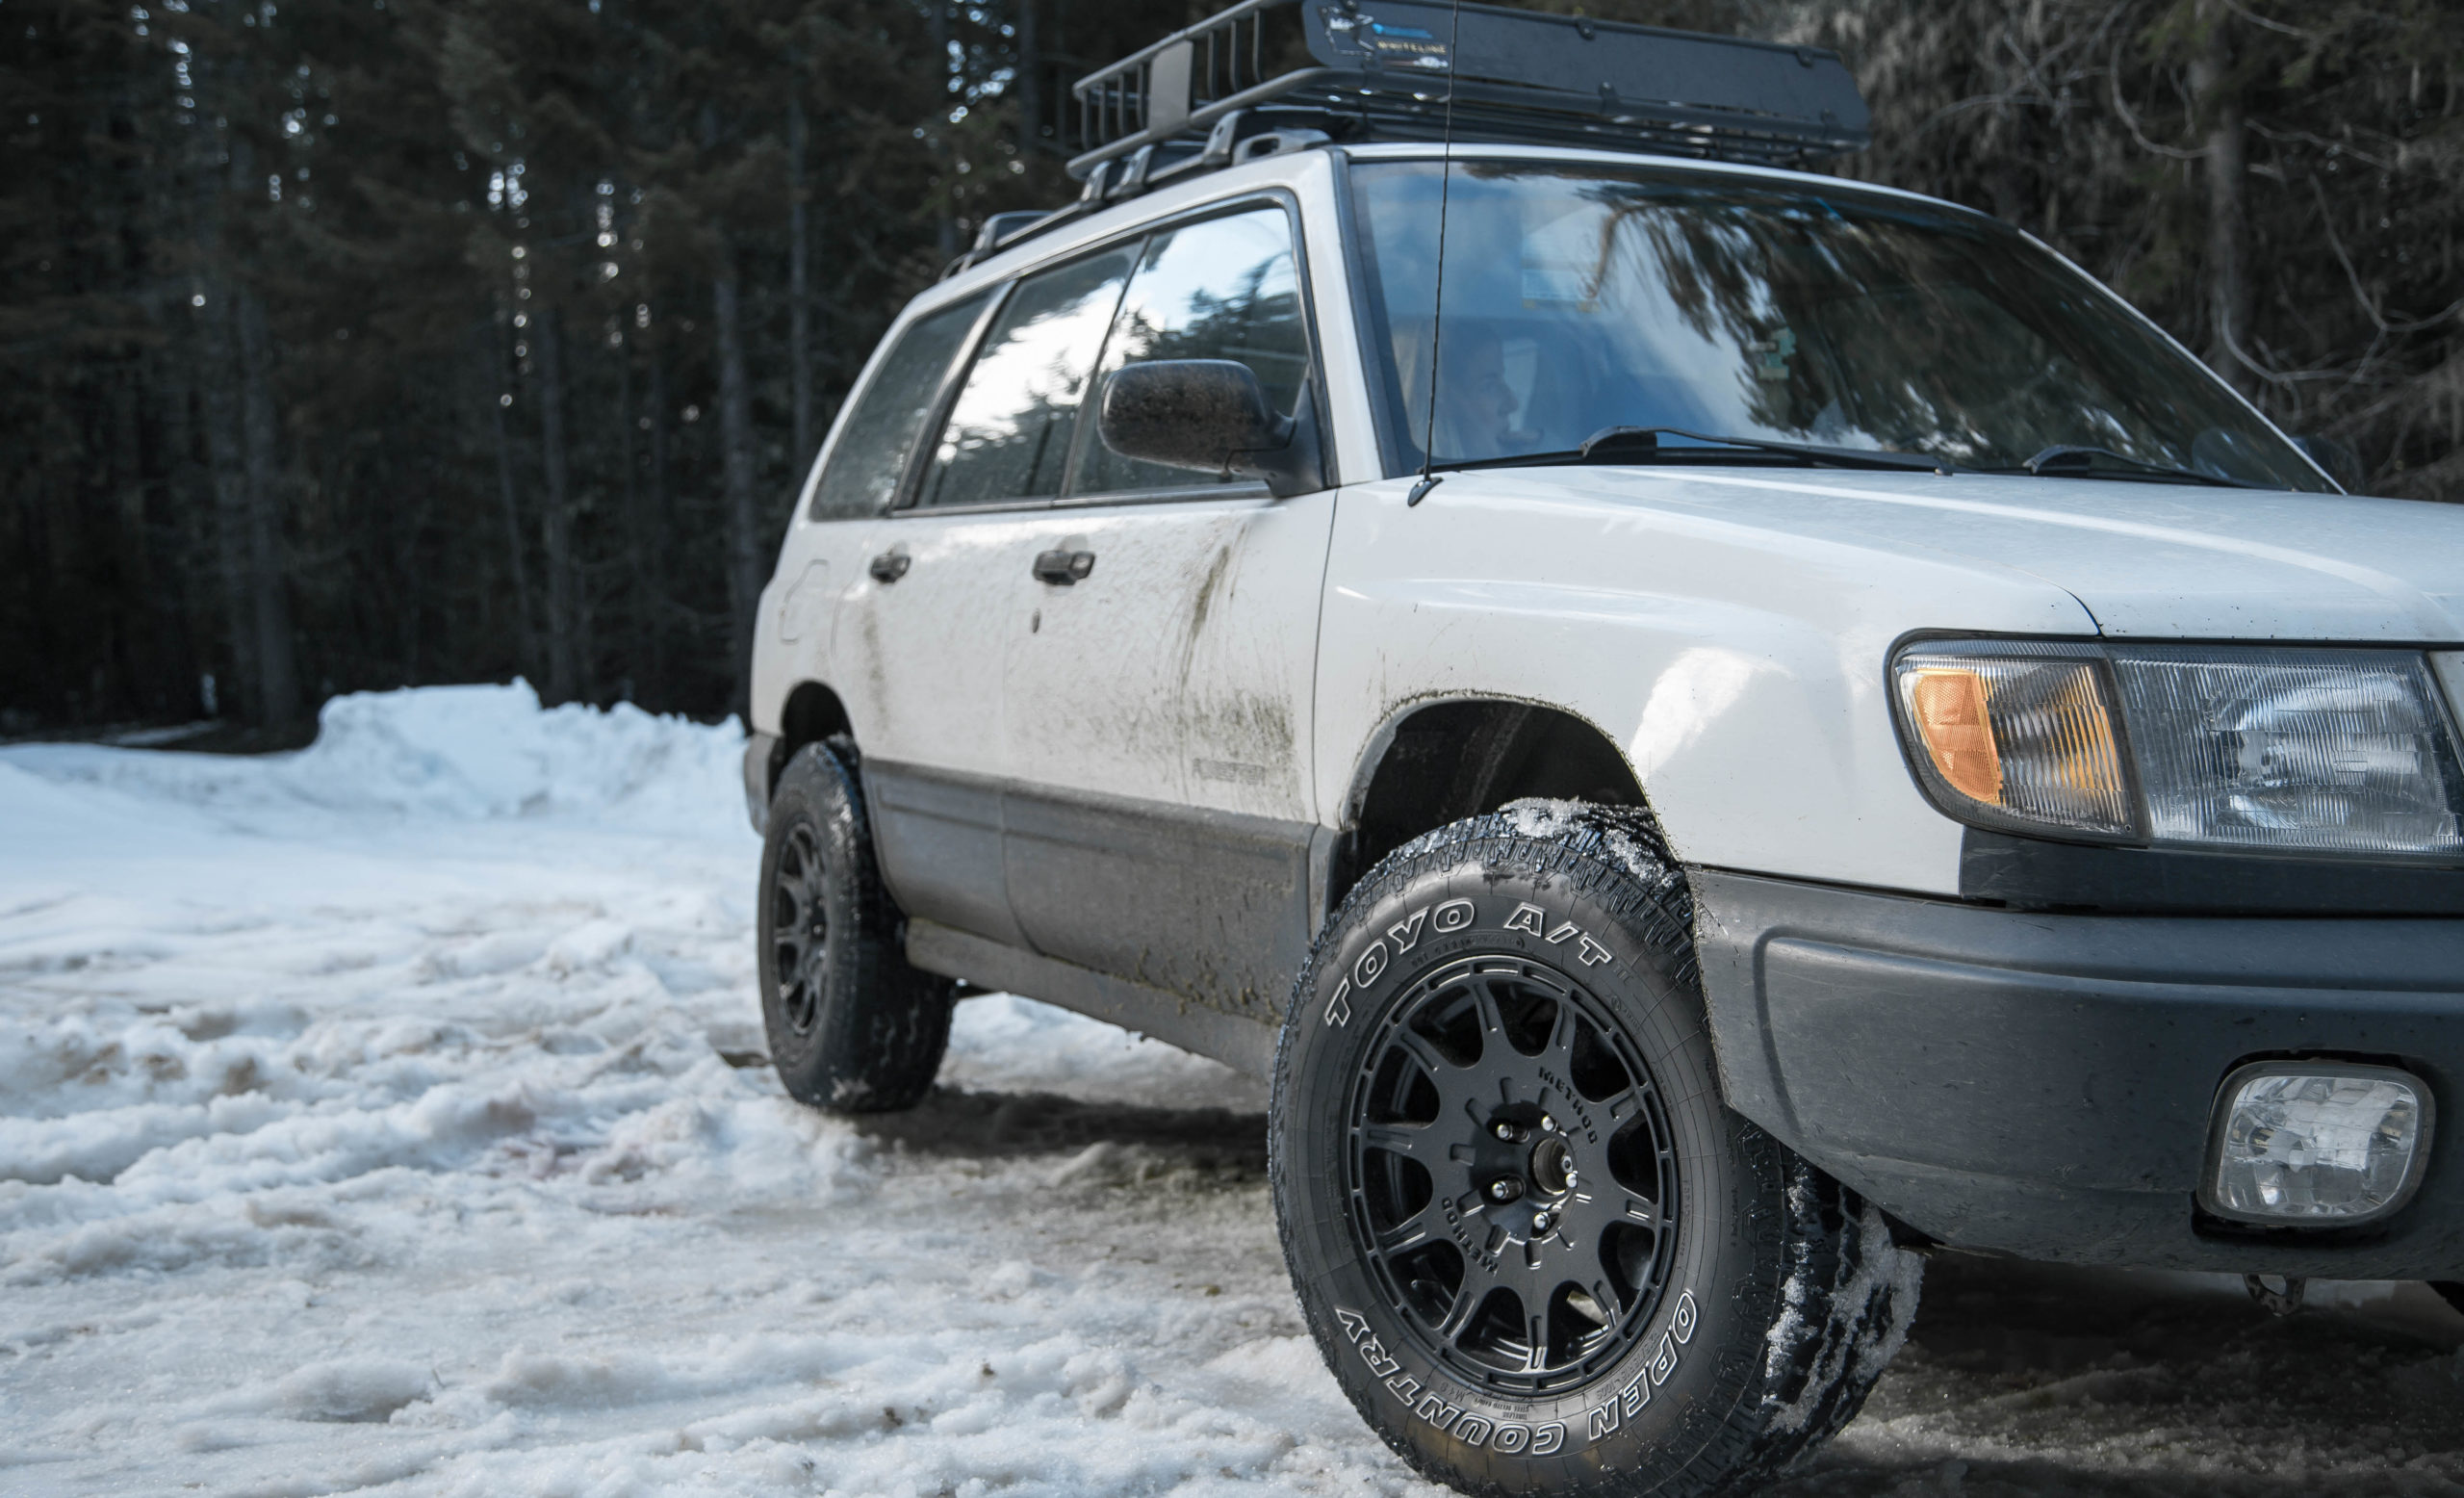 Lifted subaru forester with method mr502 wheels and toyo open country tires in the snow